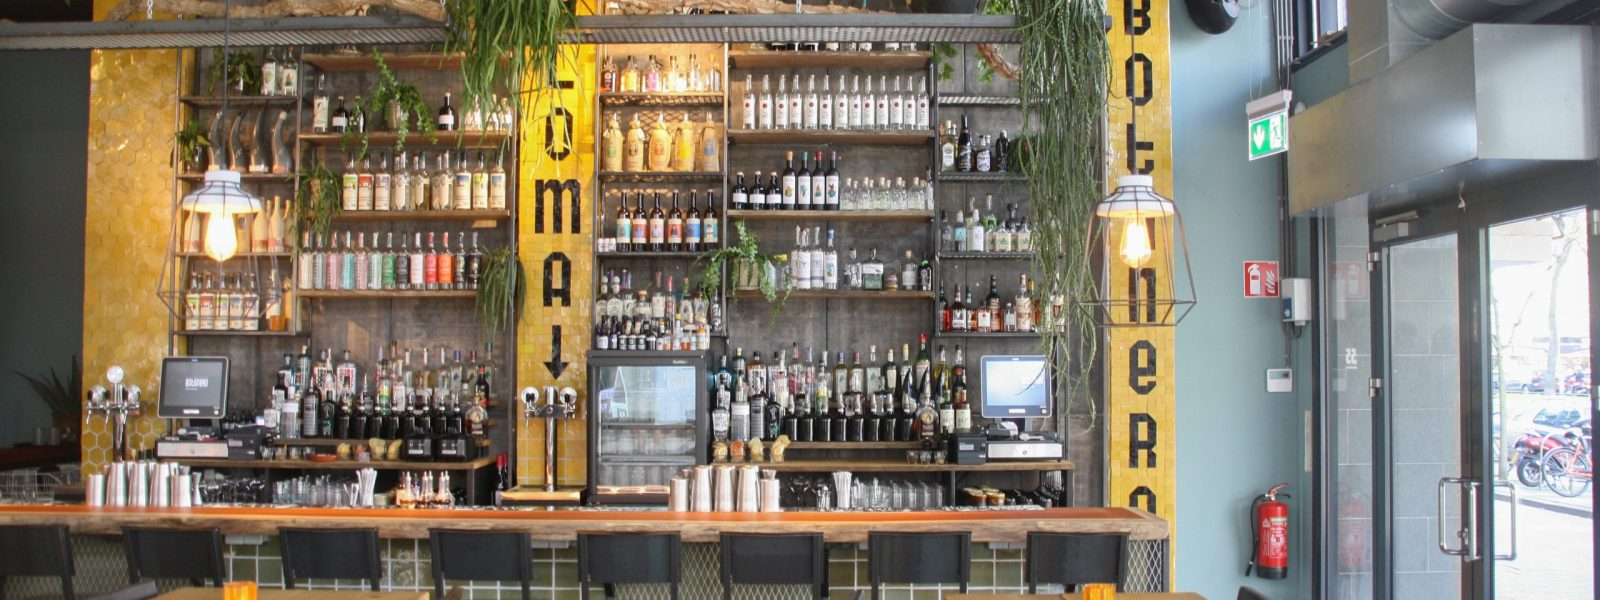 25 best bars in Rotterdam: pubs, cocktails and more